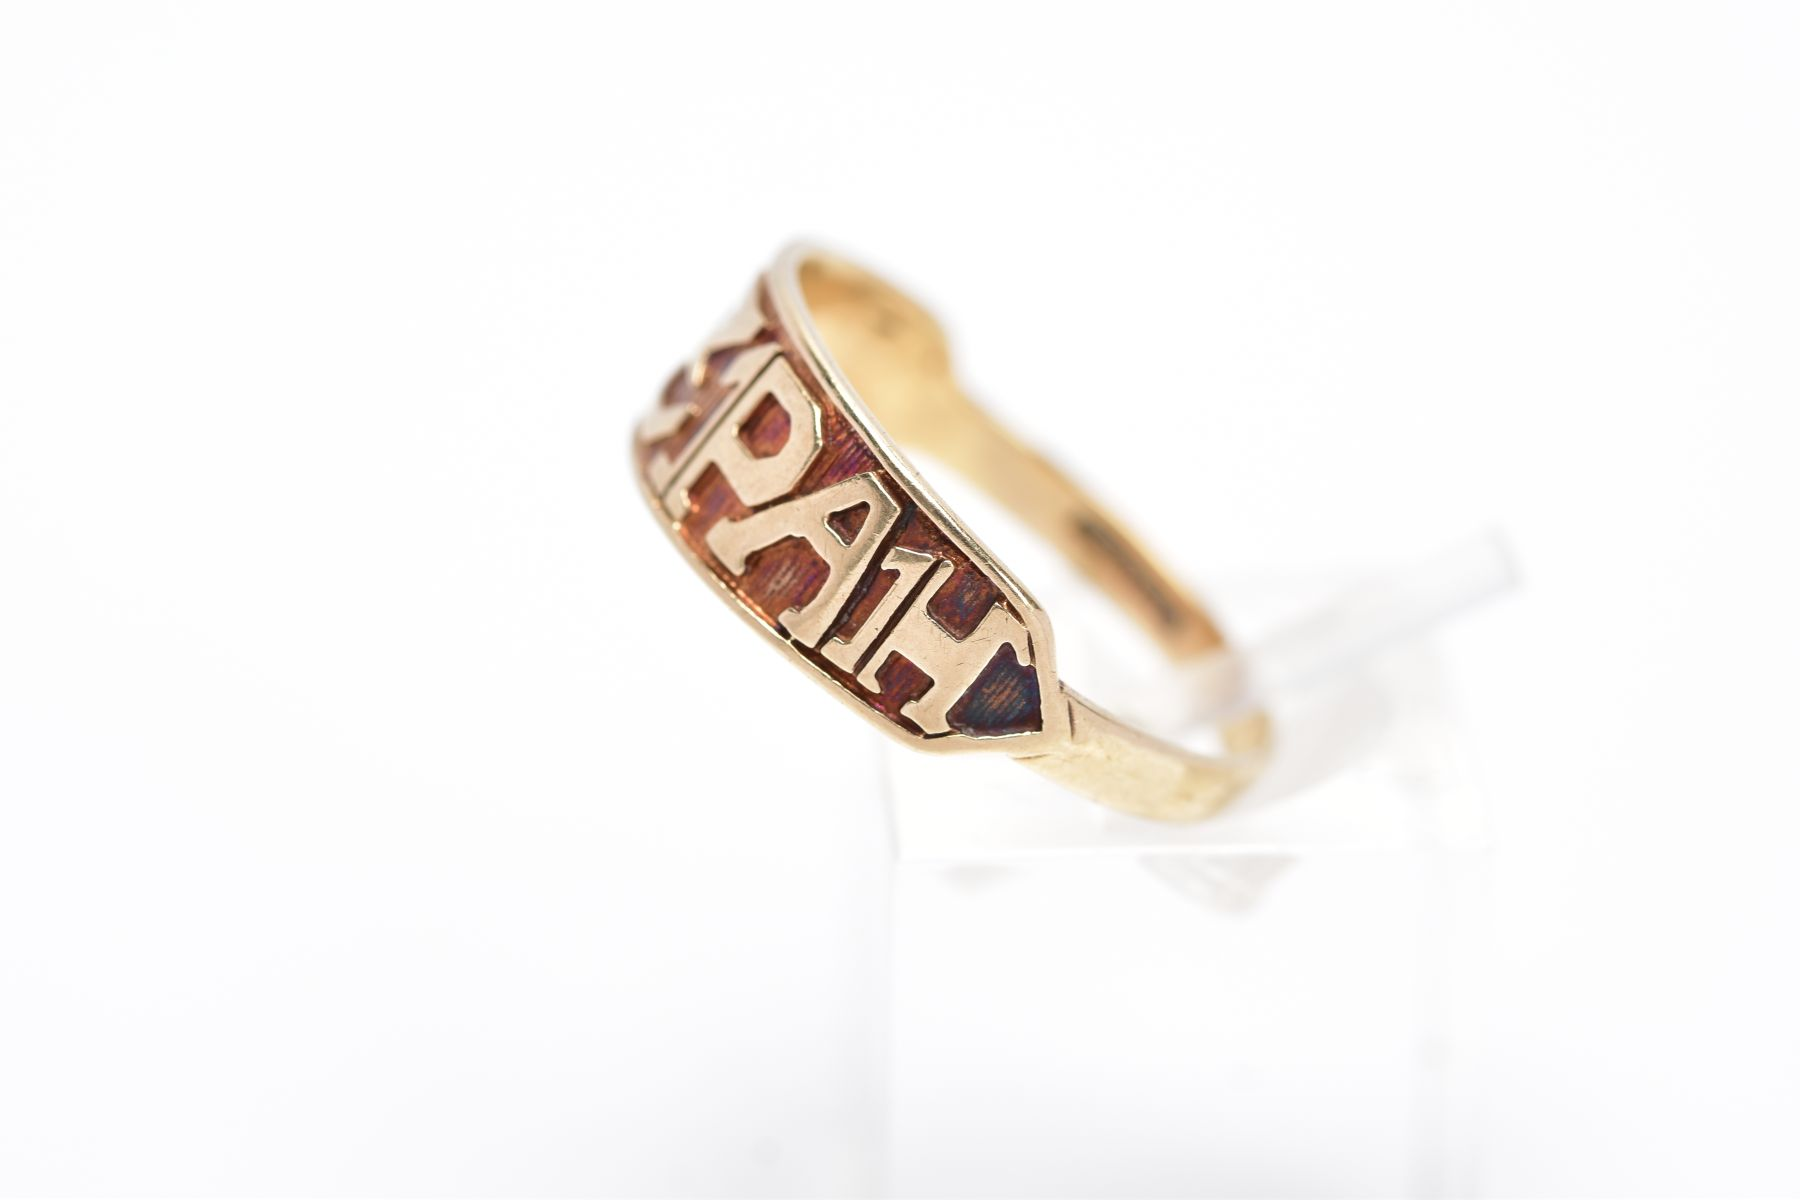 A 9CT GOLD 'MIZPAH' RING, inscribed 'Mizpah' band, with a textured background, hallmarked 9ct gold - Image 2 of 4